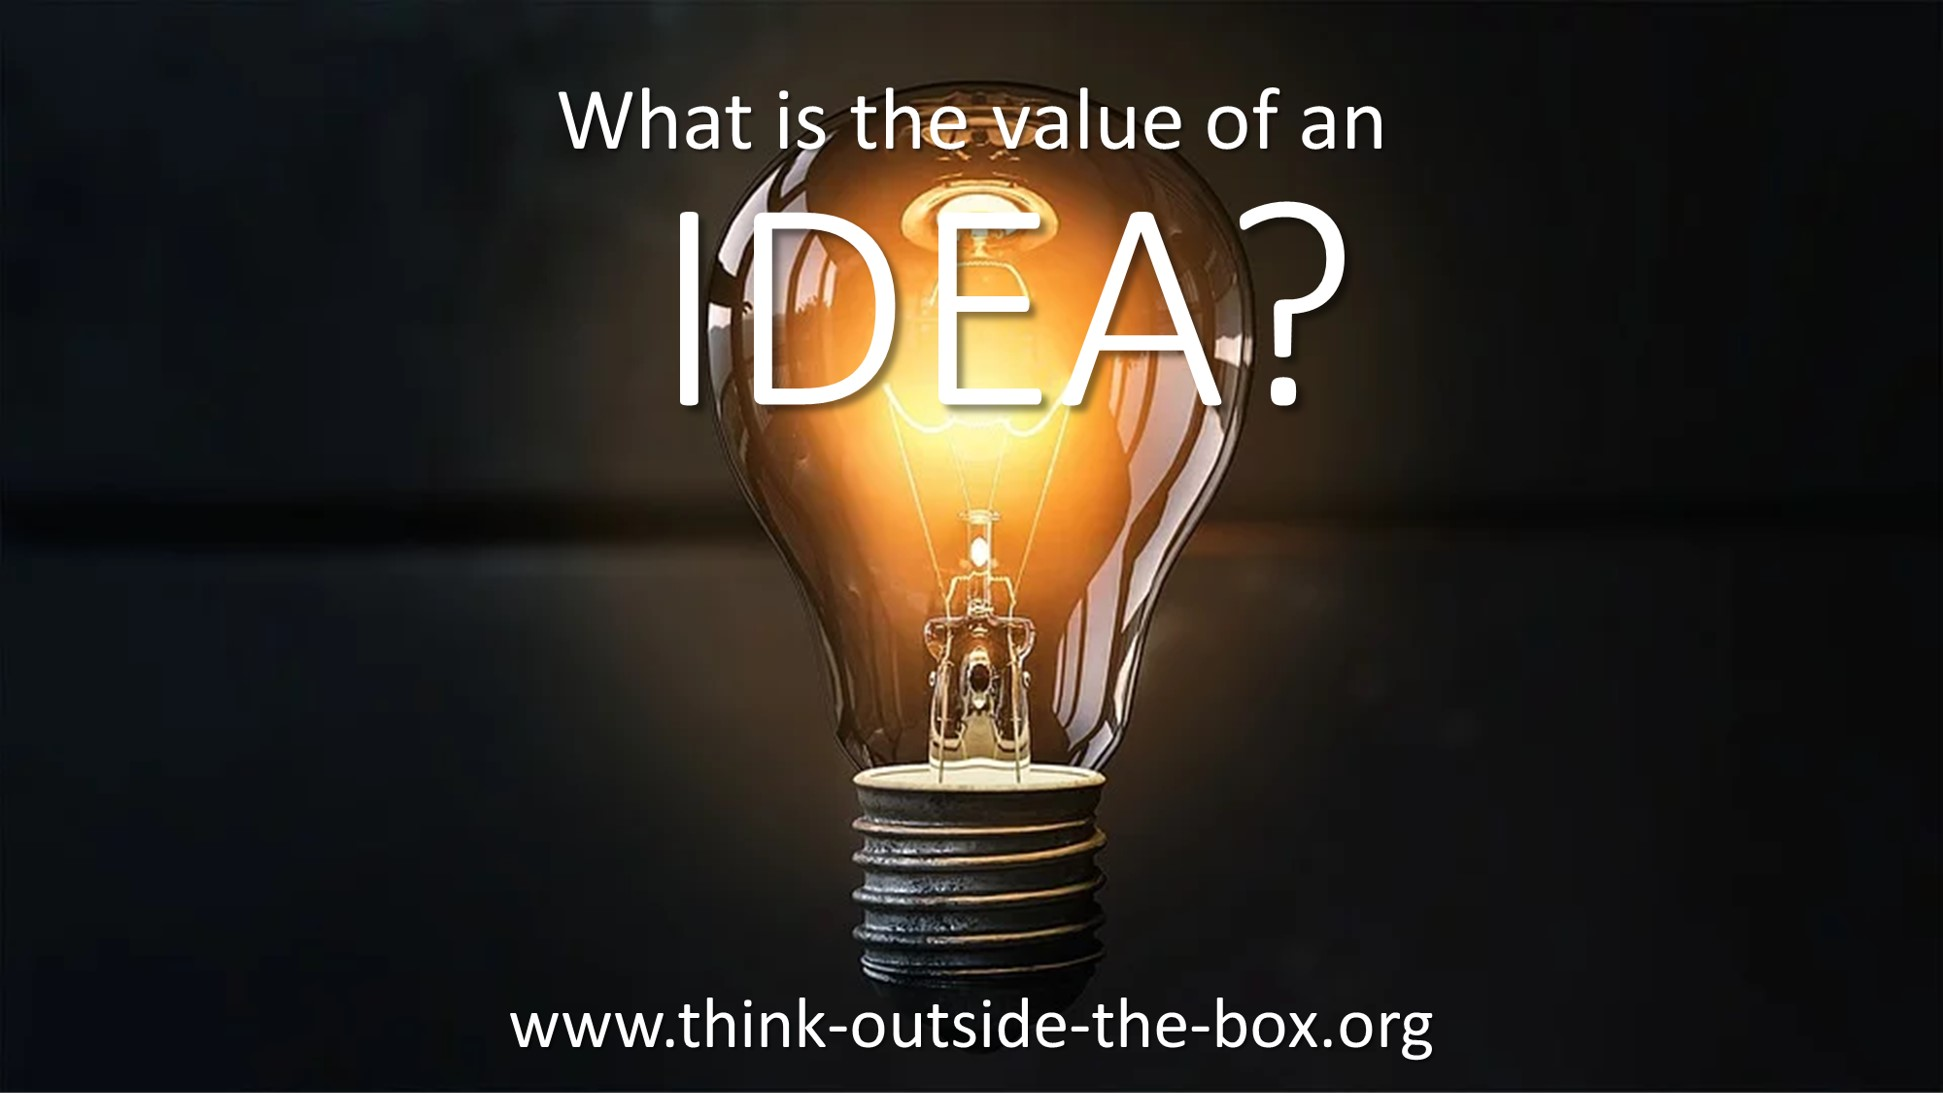 What is the value of an IDEA